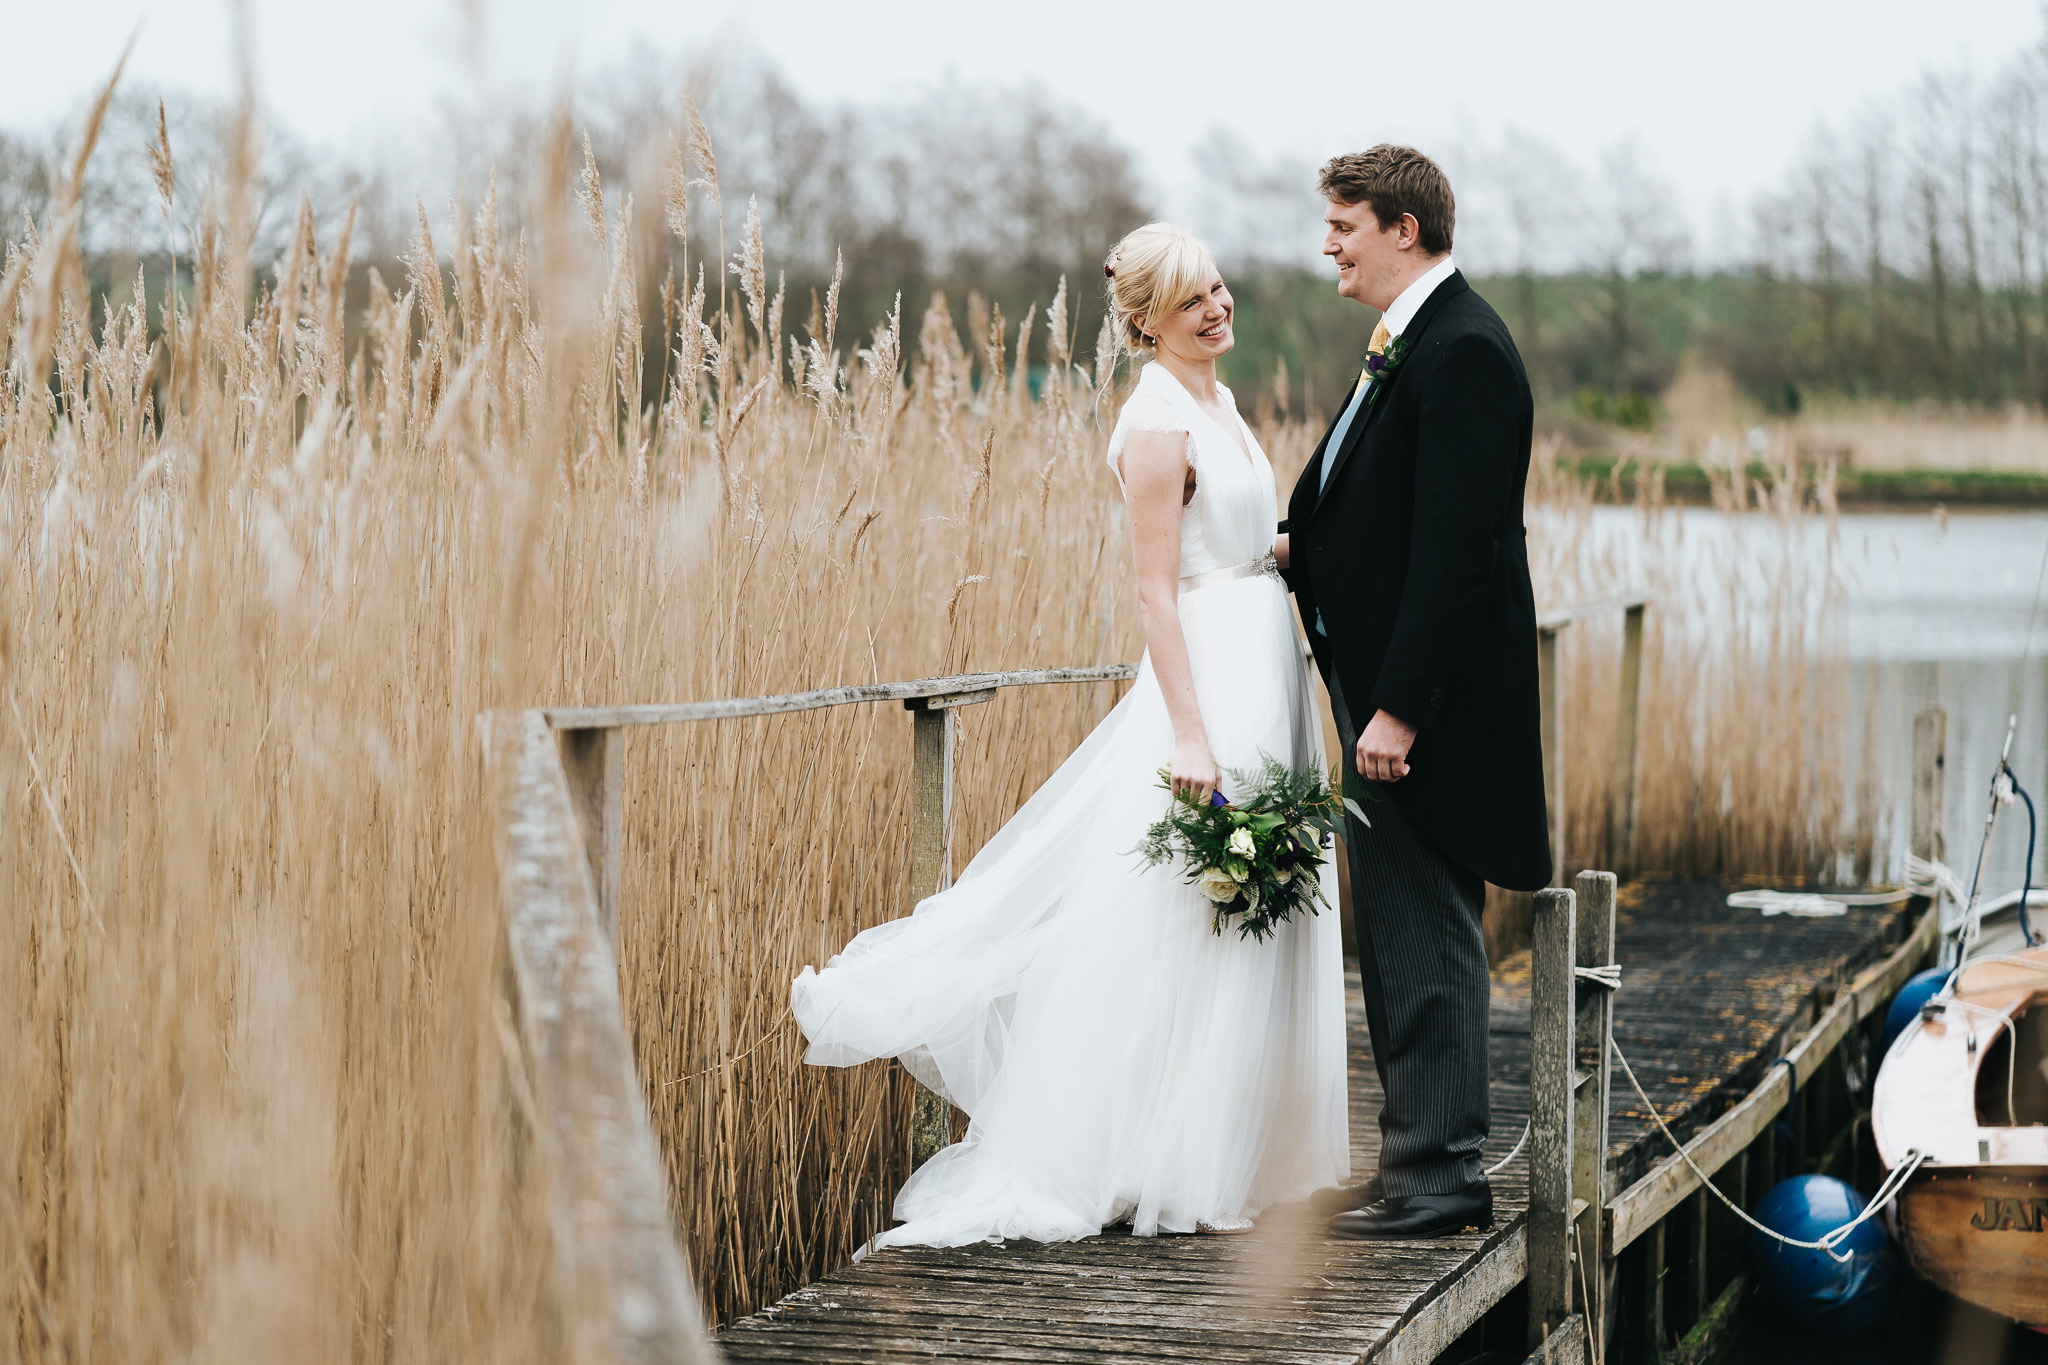 freshwater isle of wight wedding couple standing on jetty